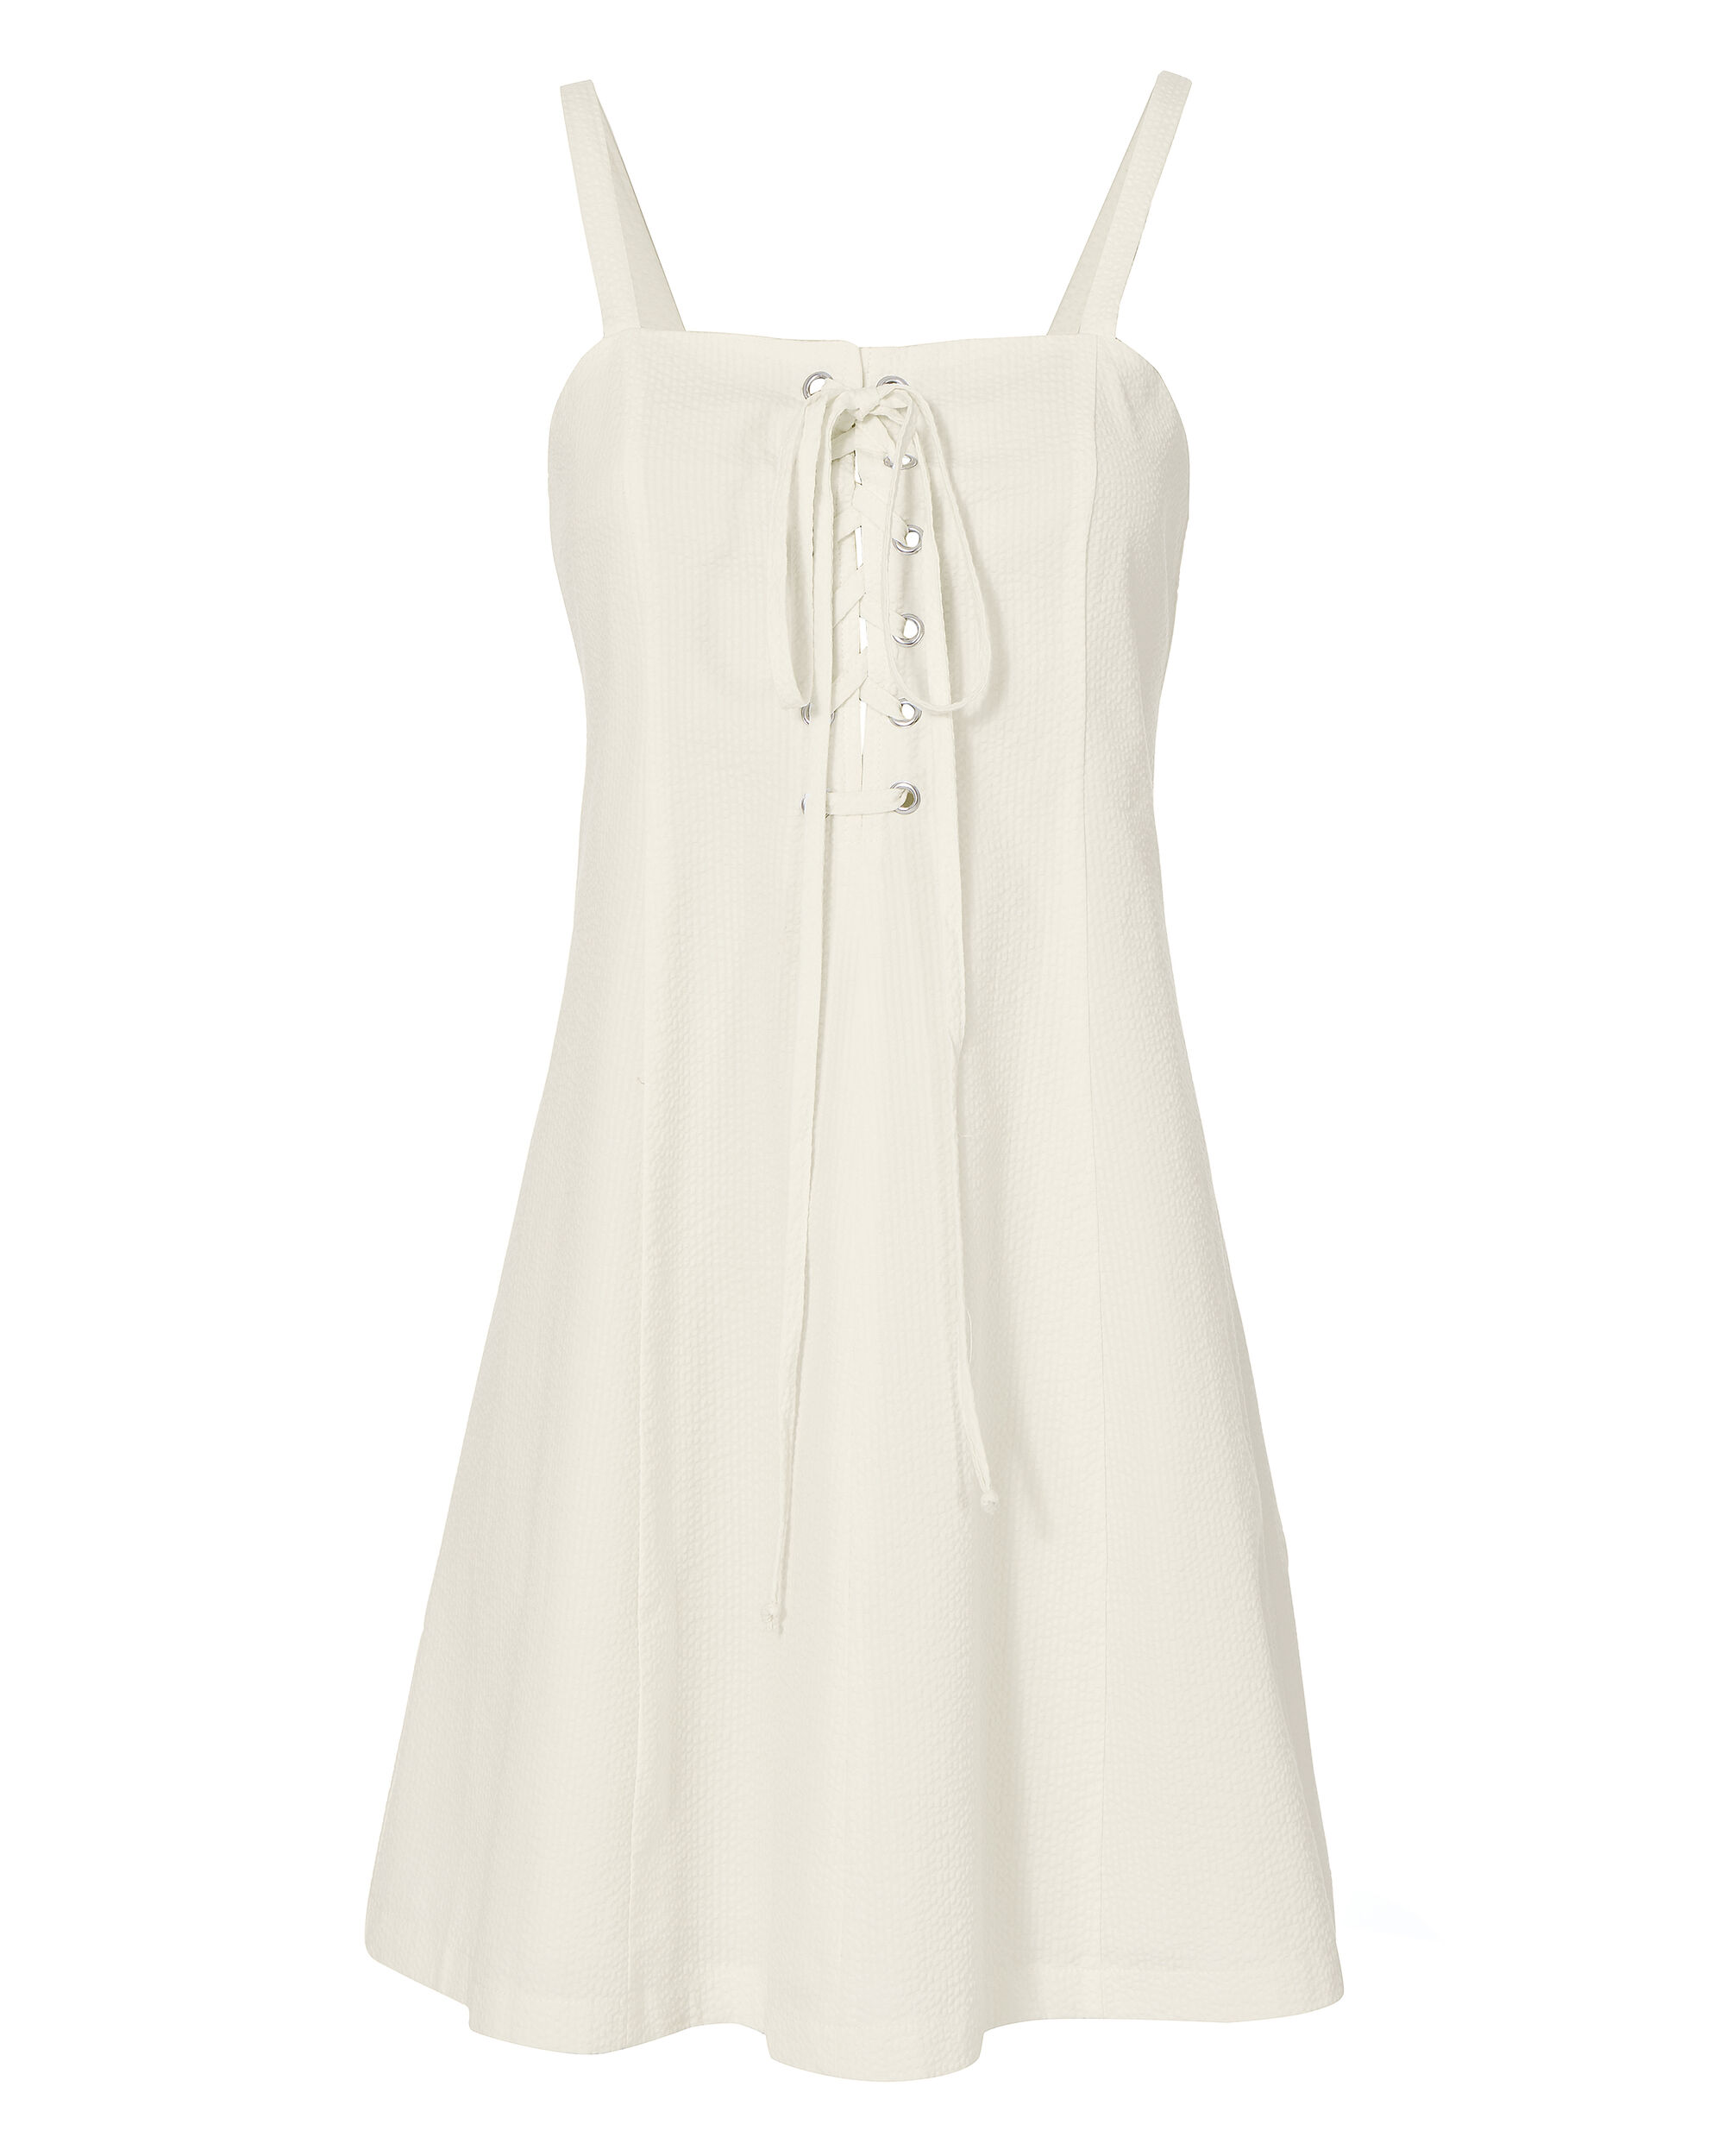 Catalina White Seersucker Lace-Up Mini Dress, WHITE, hi-res